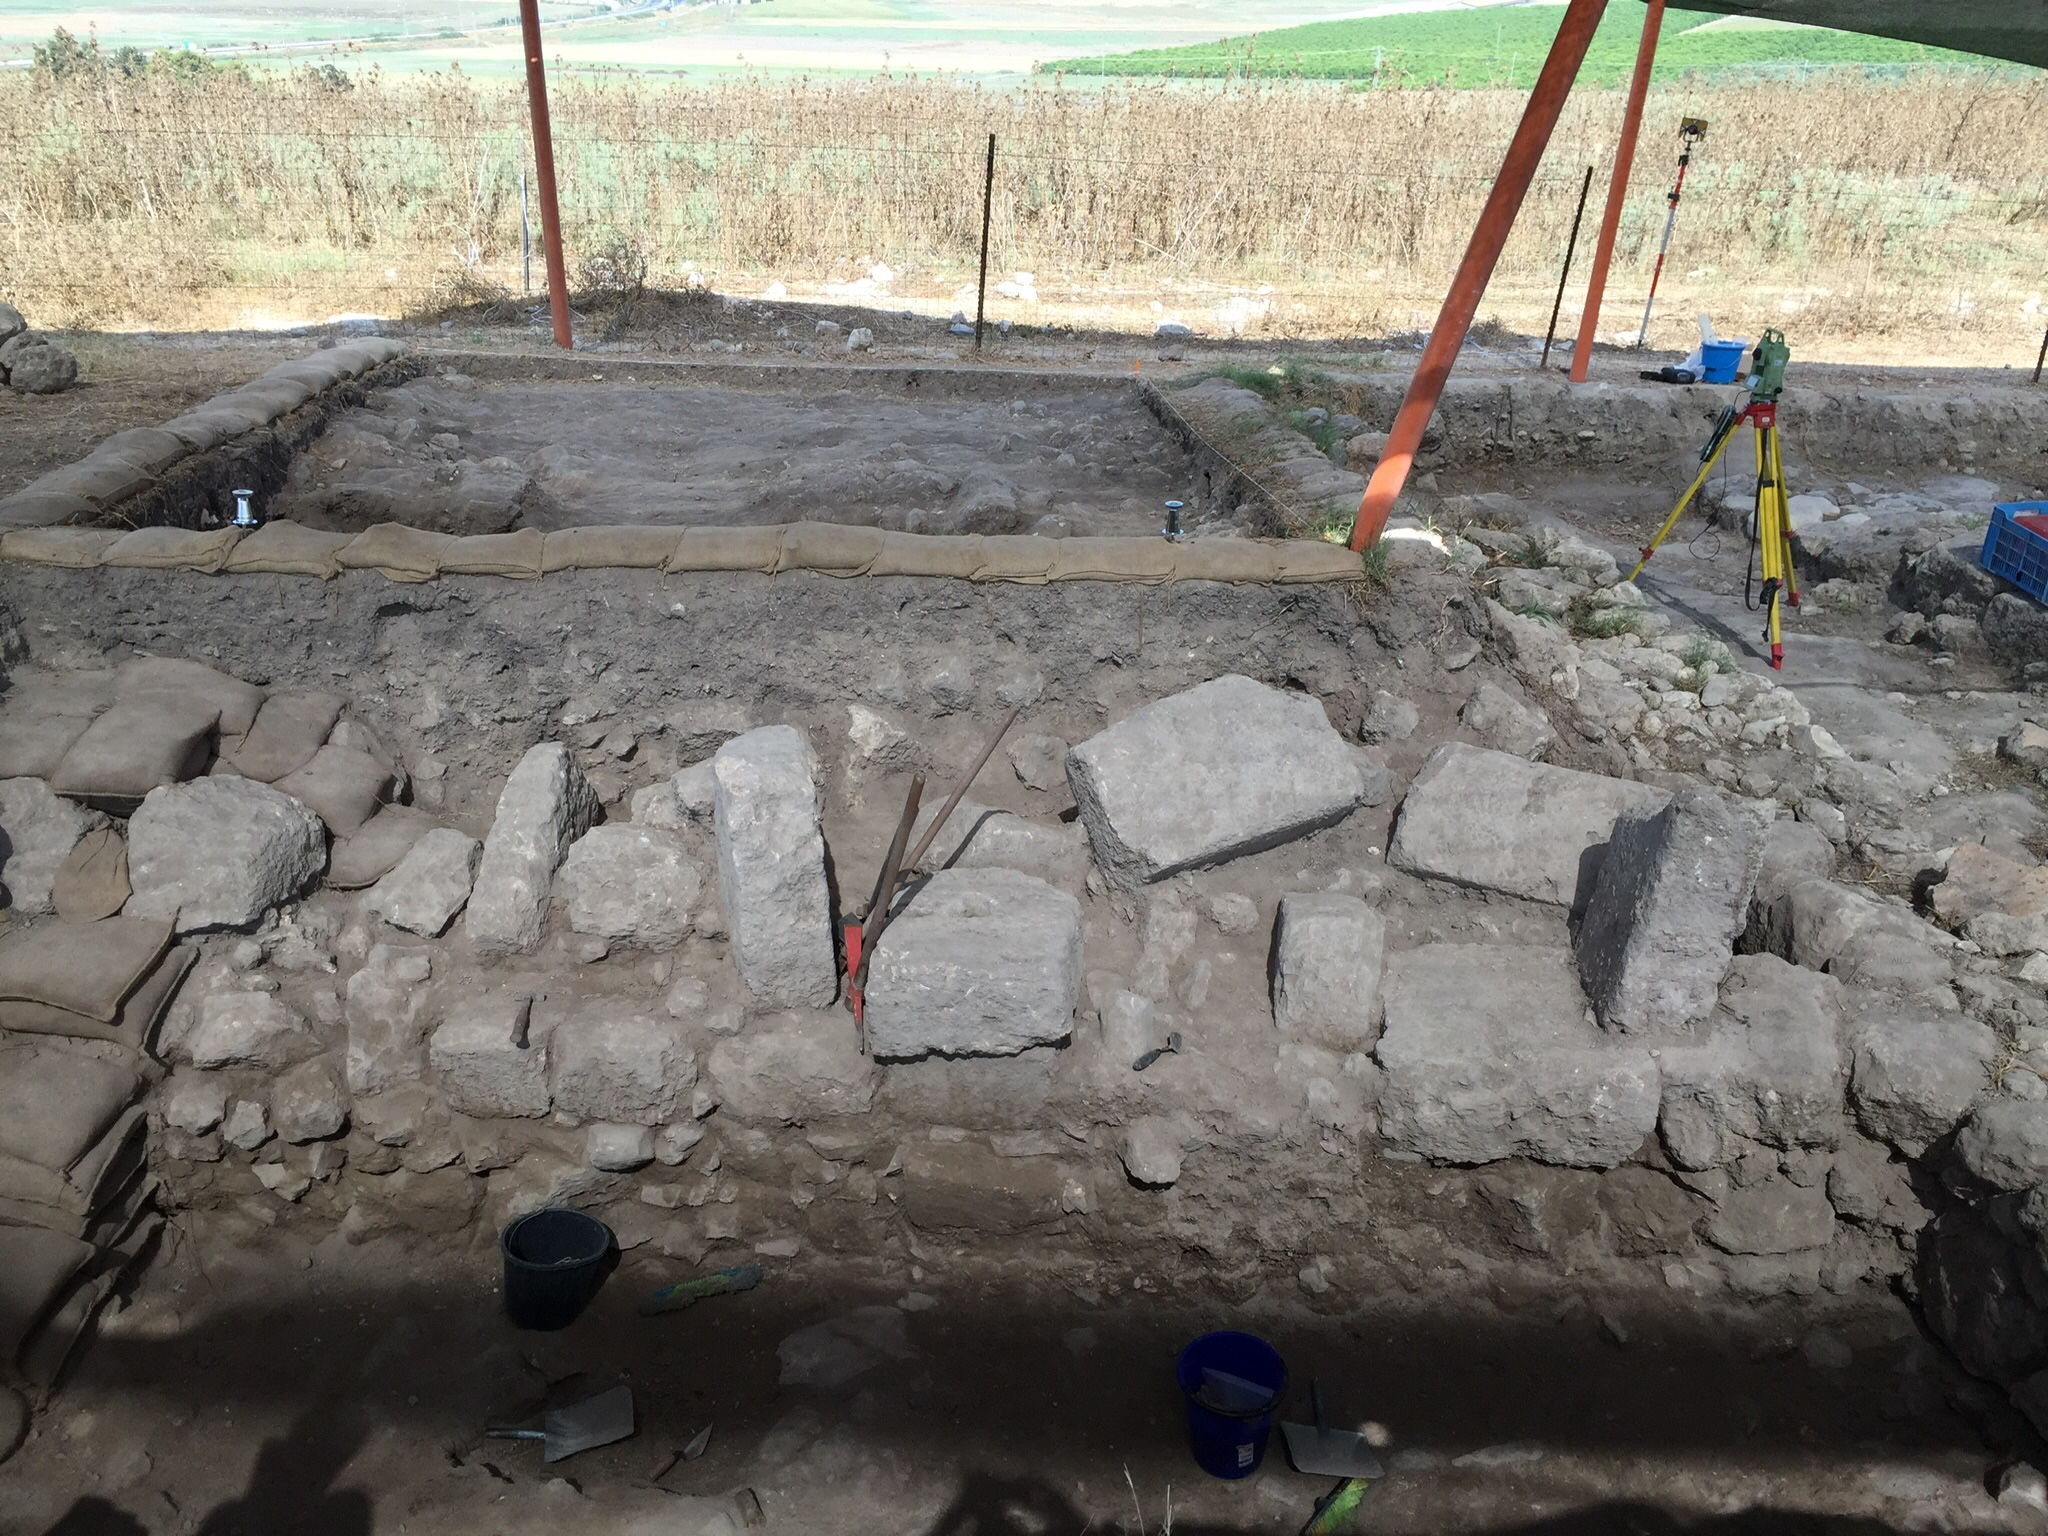 Visitors to Grid 23/24 saw the newly uncovered wall of a building which likely dates to the Roman period